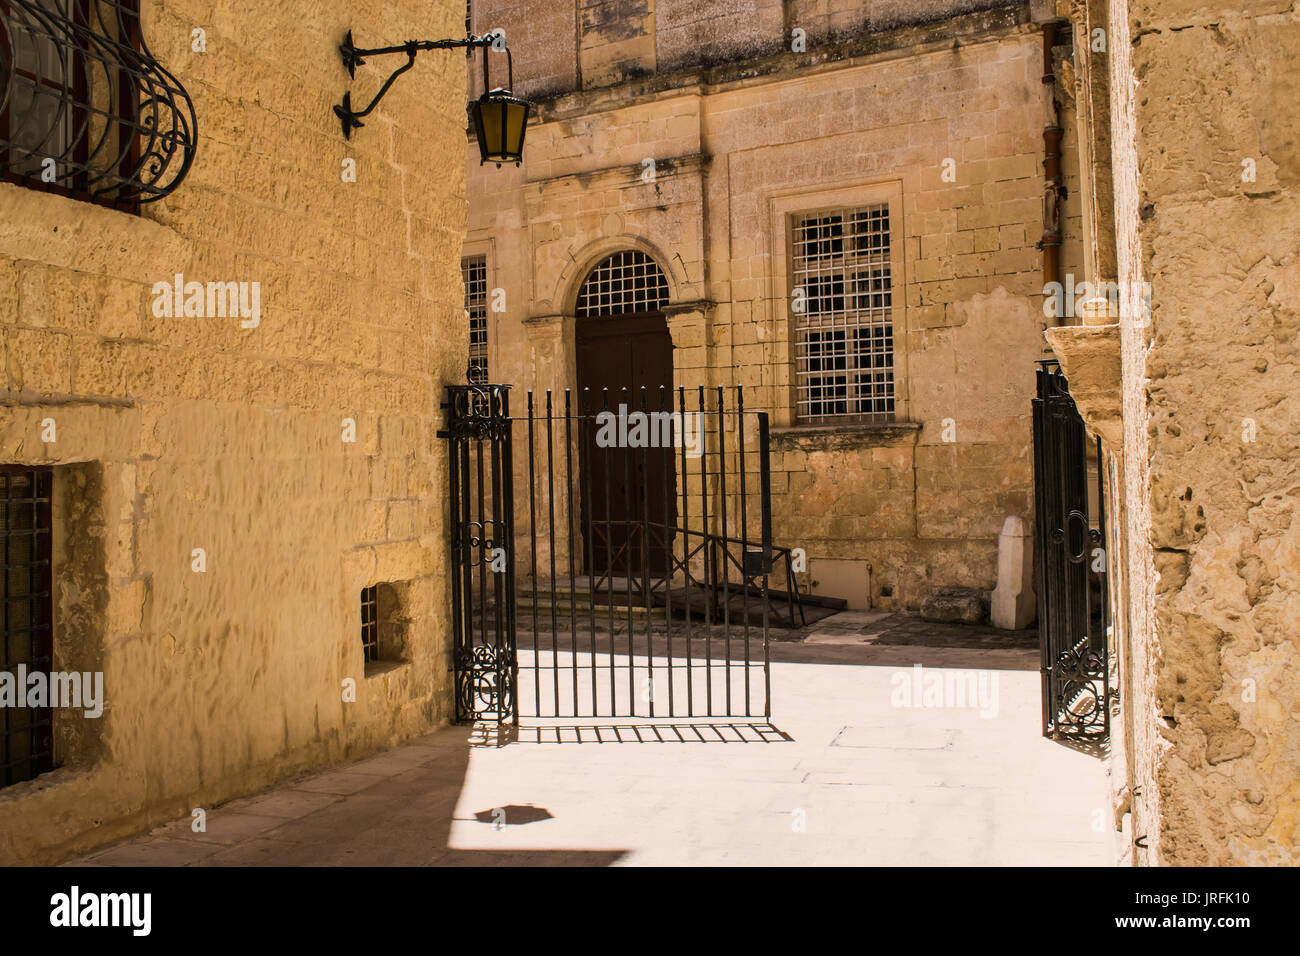 More of Mdina. Typical buildings in Mdina, Malta. - Stock Image